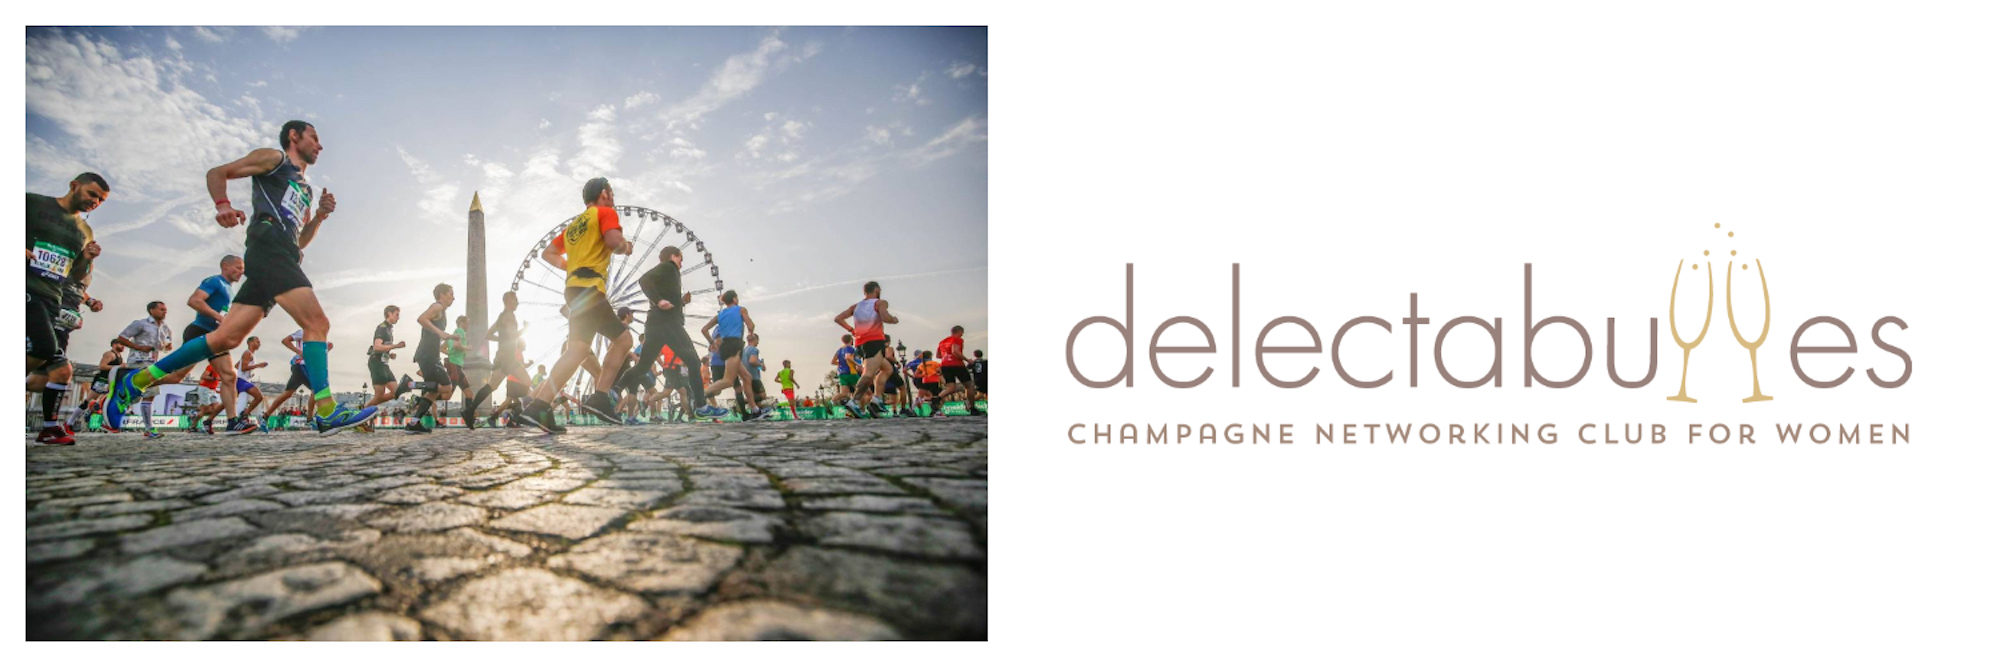 Runners during the Paris Marathon in April on Place de la Concorde (left). The logo for Delectabulles, which will be doing champagne tastings this April in Paris (right).